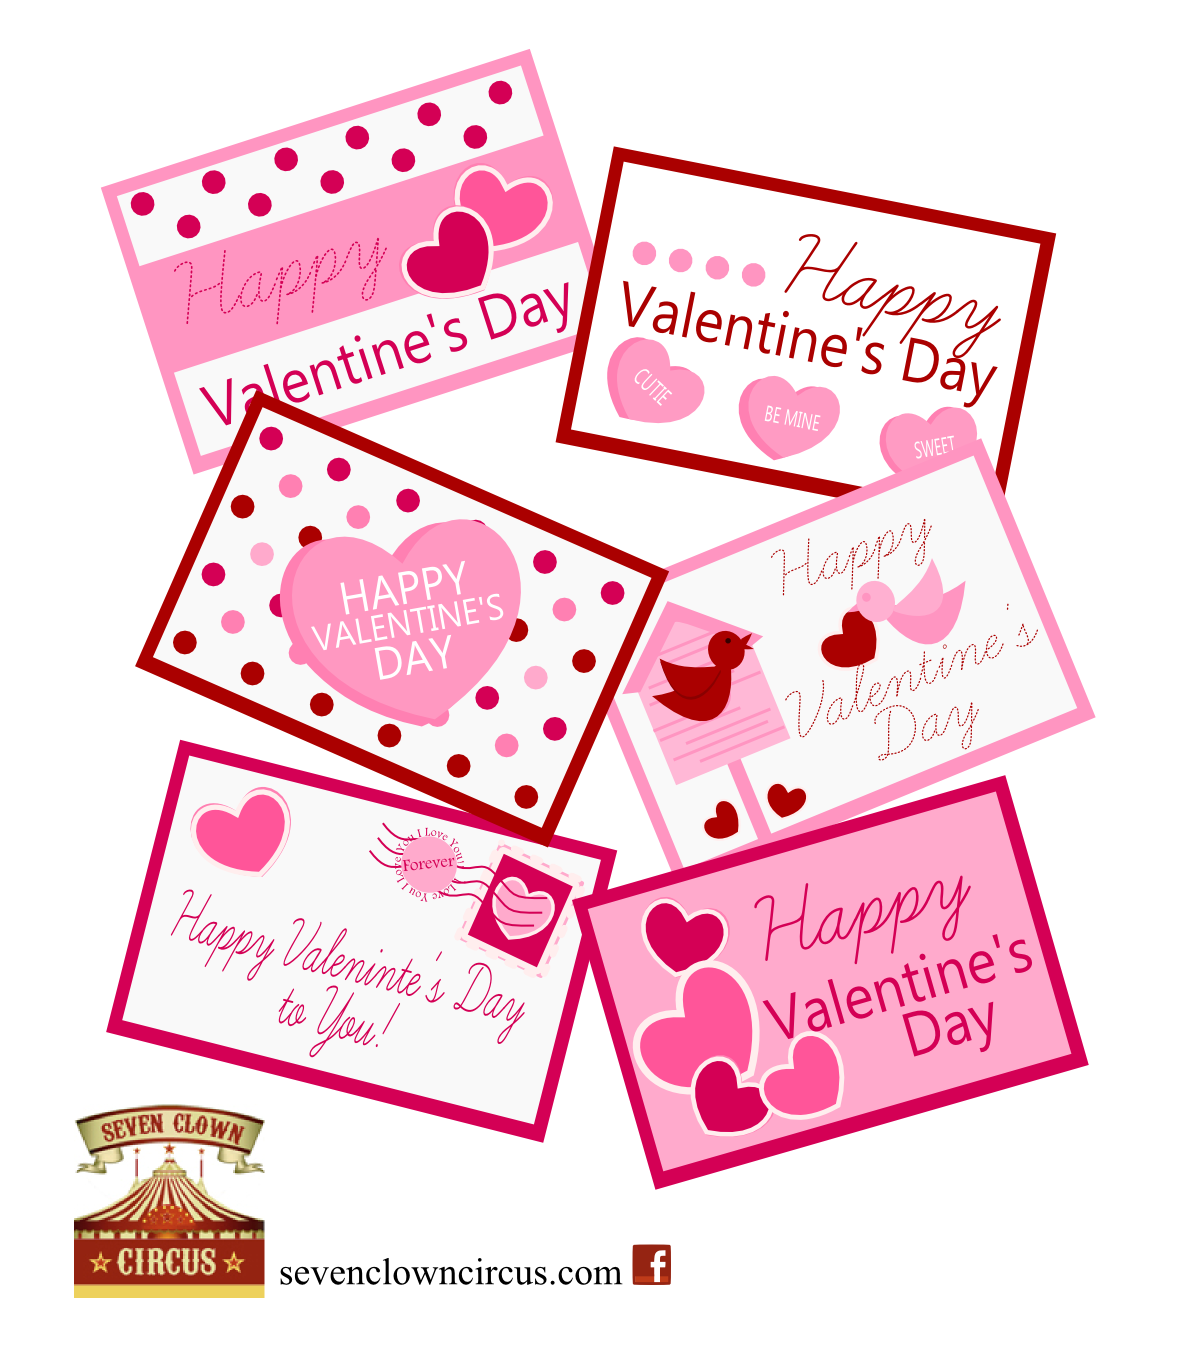 graphic about Printable Valentine Card for Teacher referred to as Printable Valentine cost-free printable